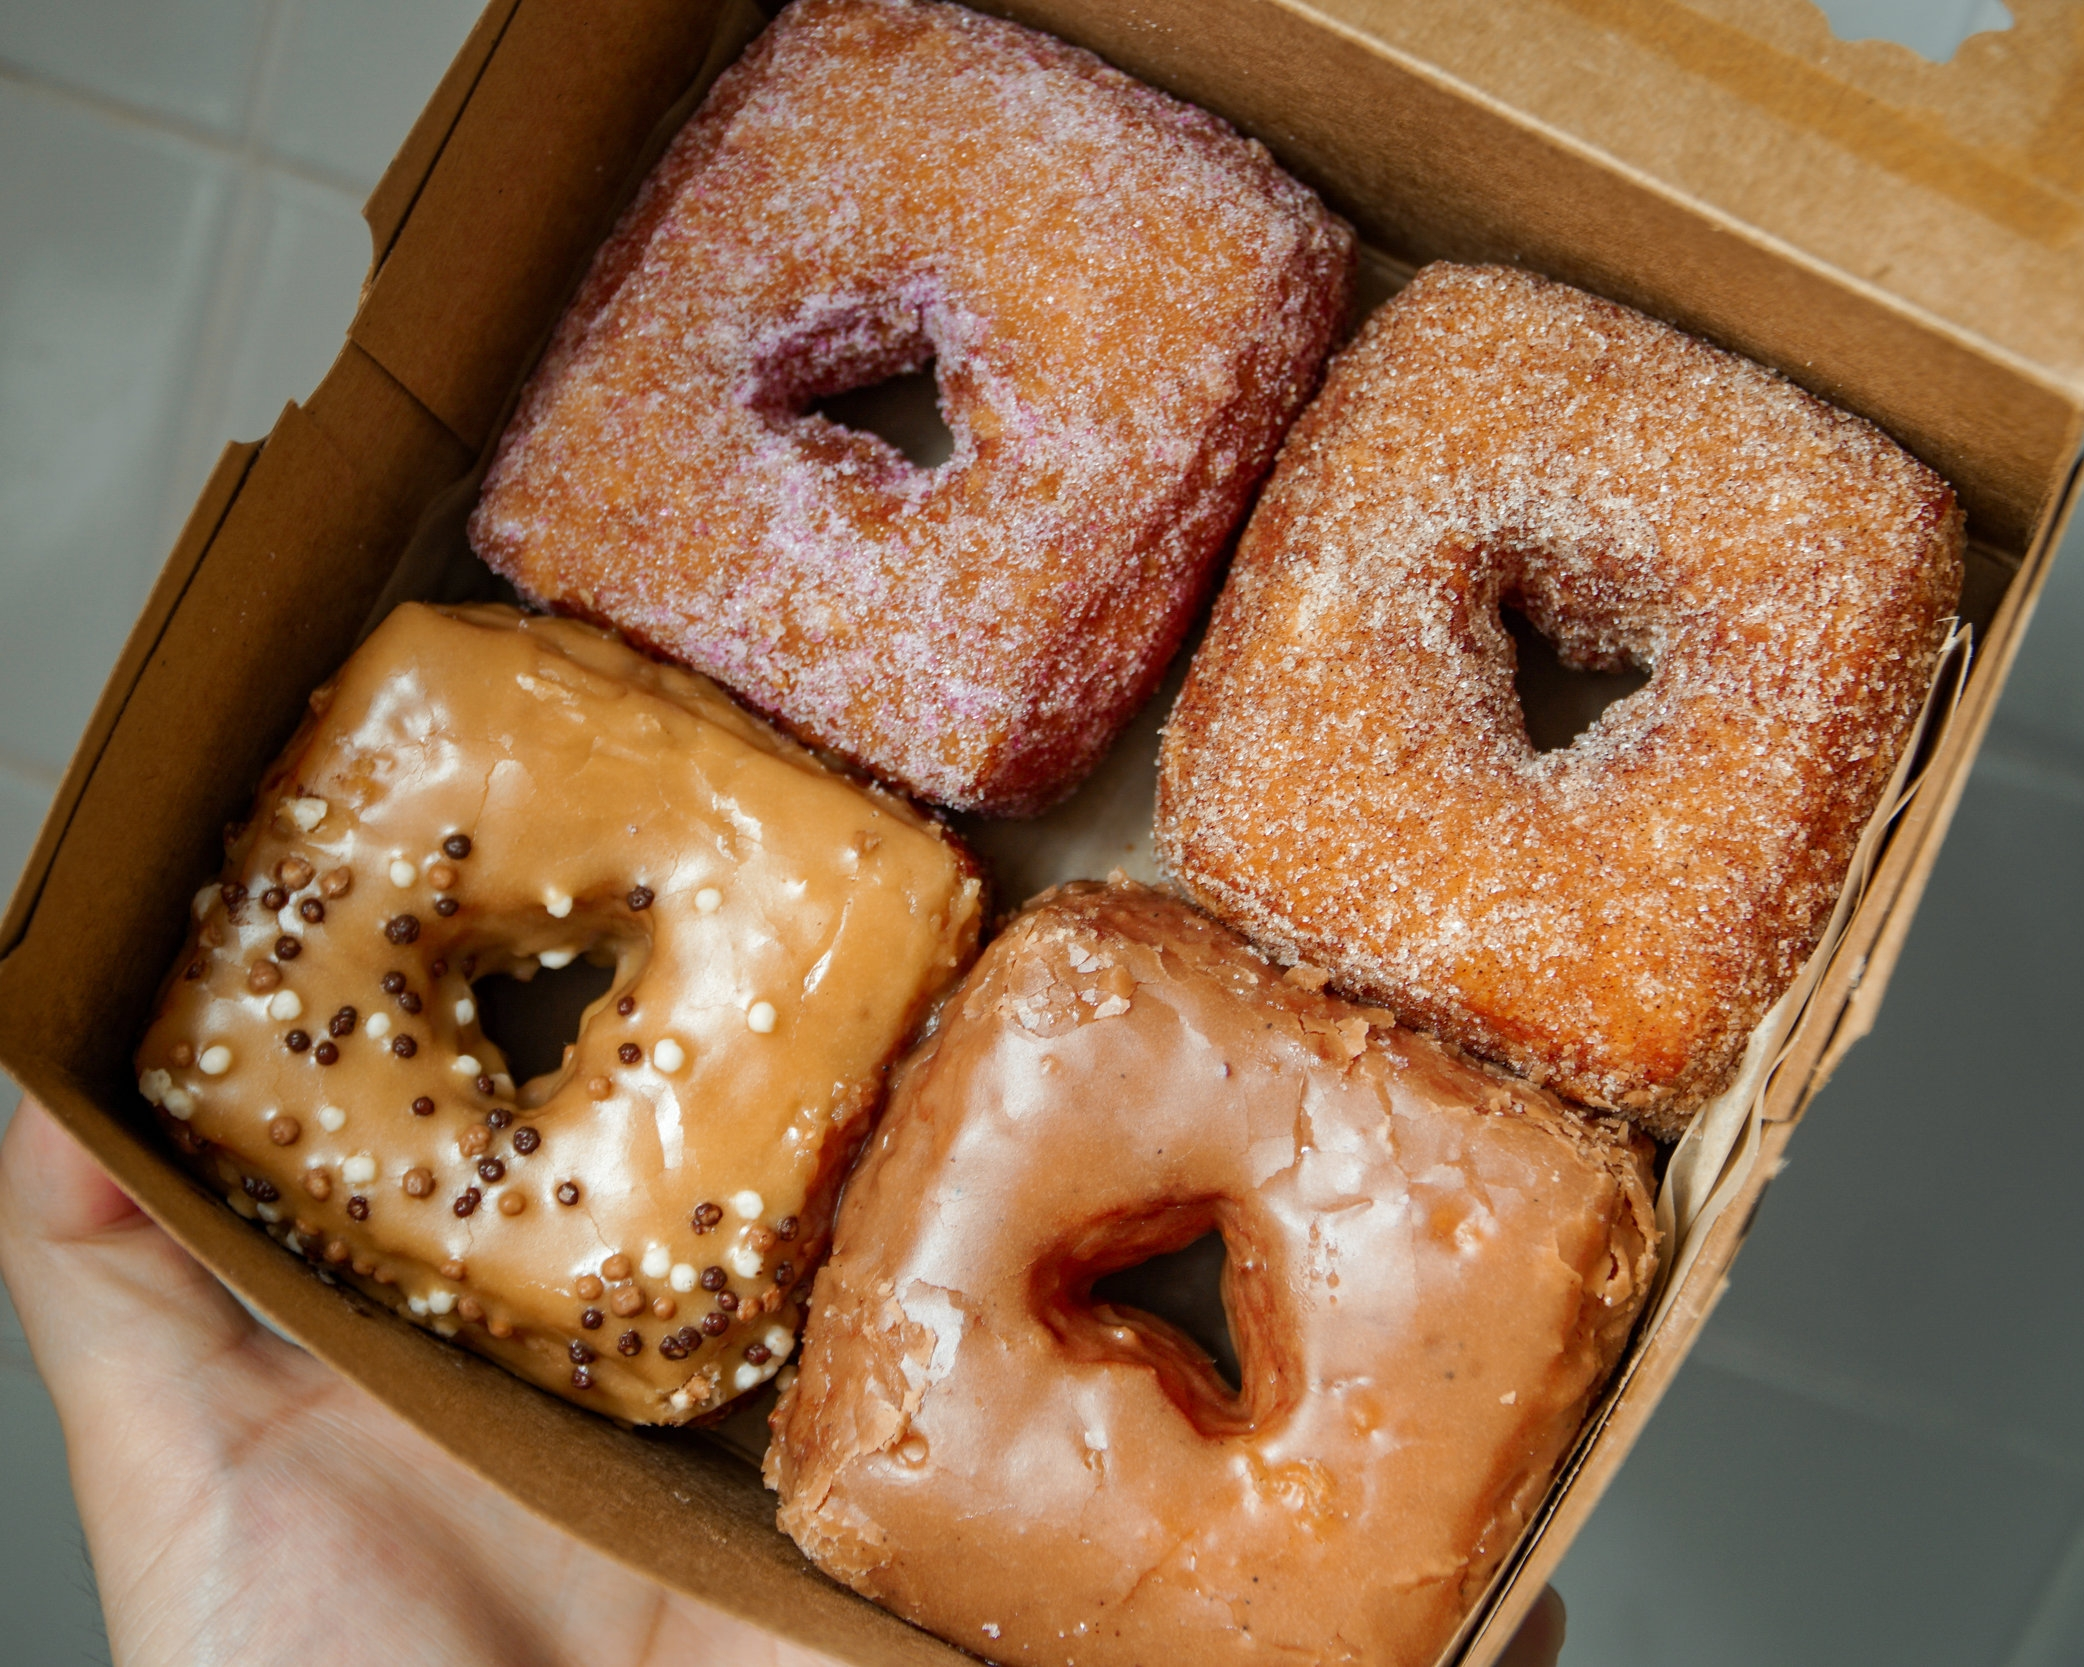 Stamped with love, these brioche dough babies are keeping Chicago's doughnut scene alive.